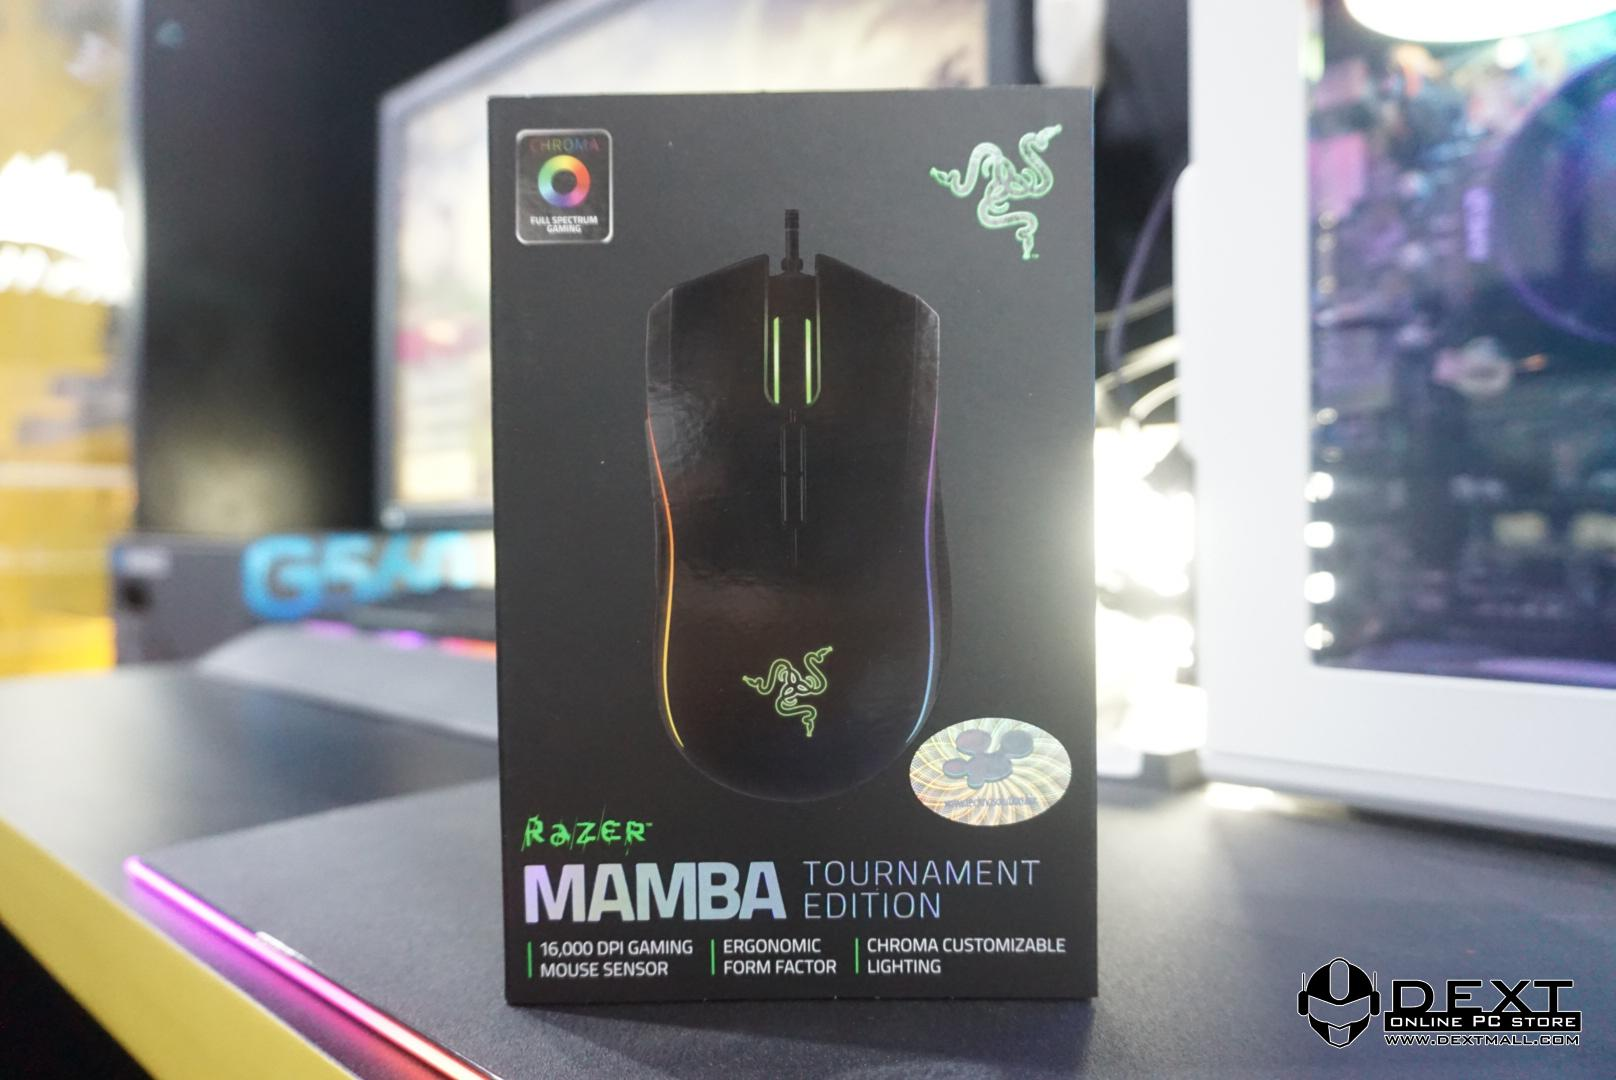 Razer Mamba Chroma Tournament Edition Gaming Mouse